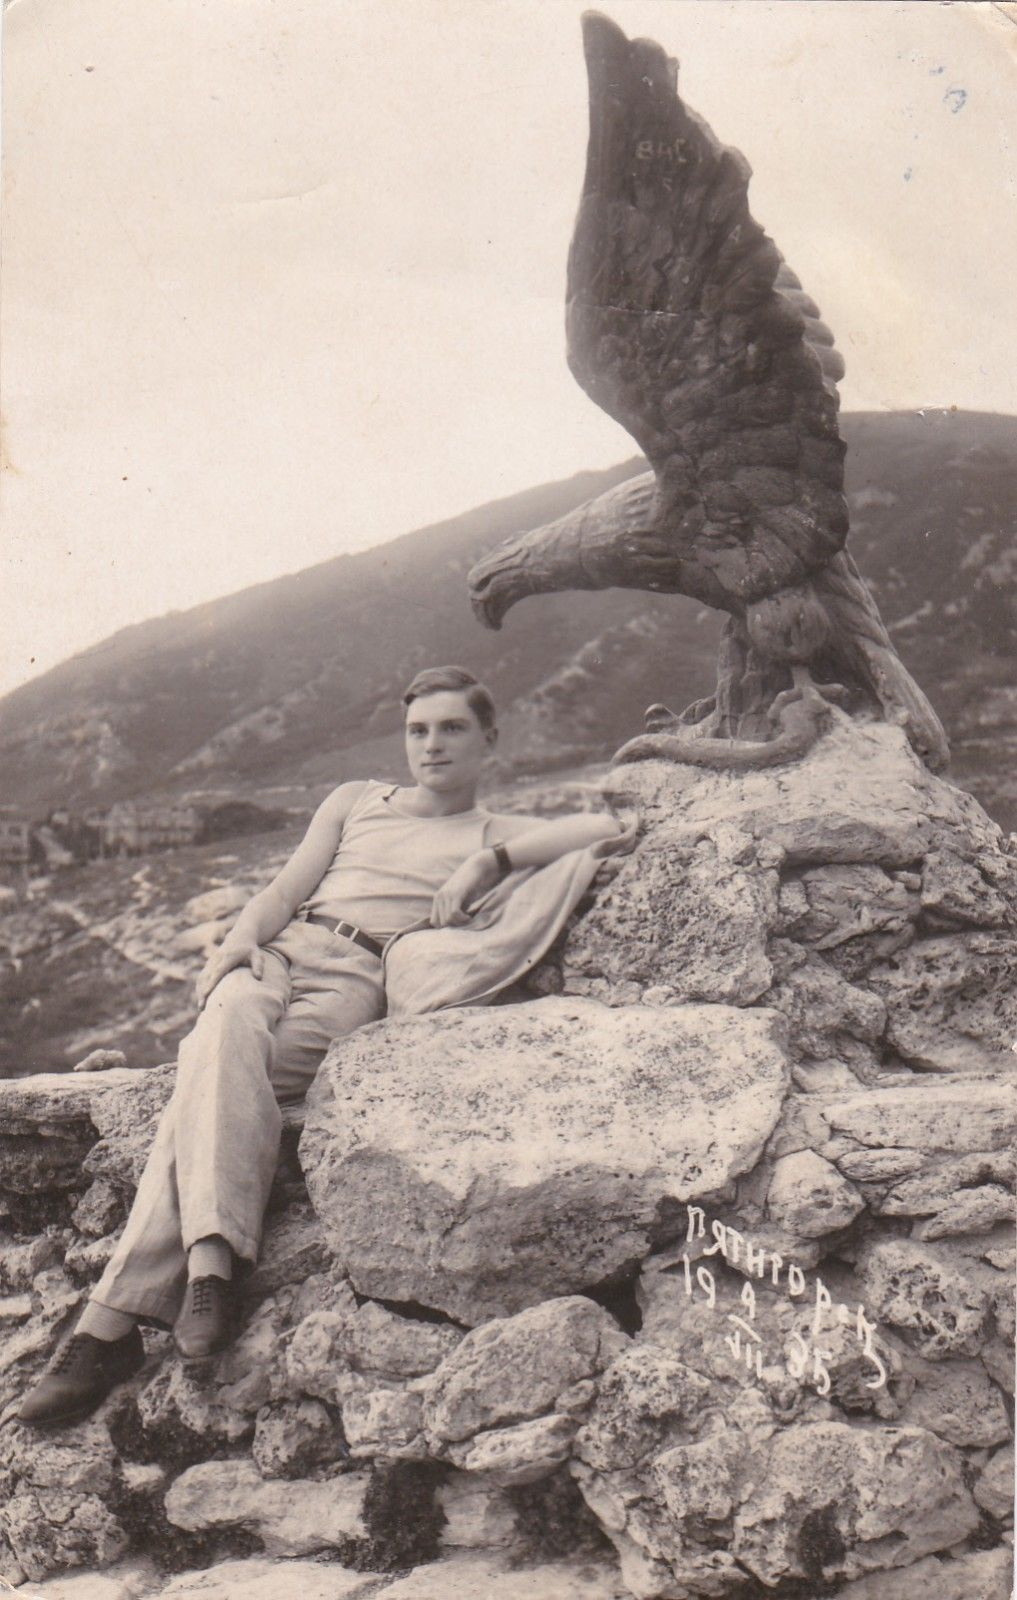 Young man reclining next to an eagle statue, 1935,Russia